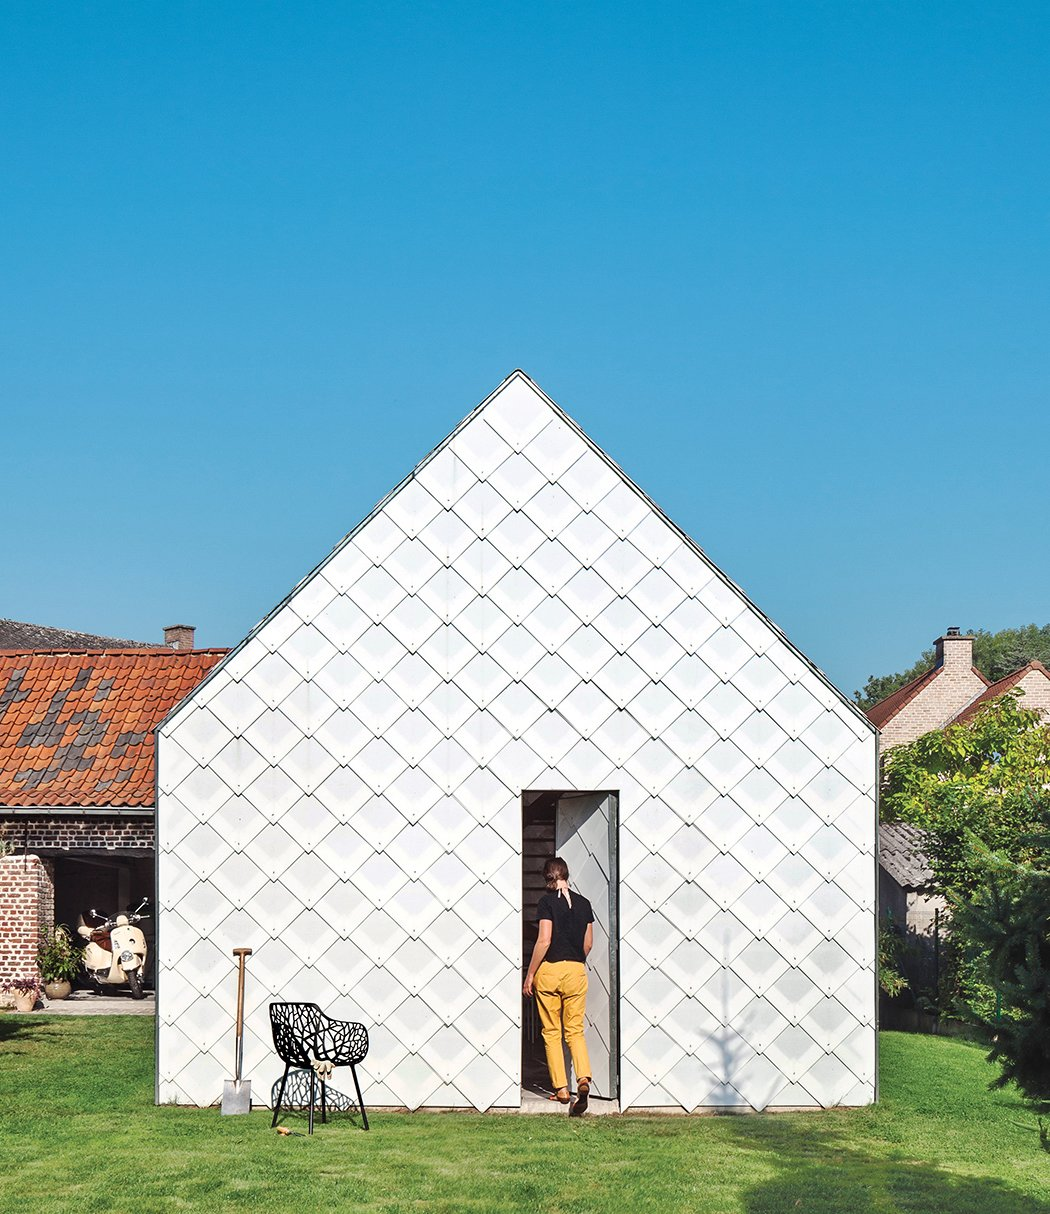 Architect Indra Janda hand-cut sheets of polycarbonate into 15¾-inch square shingles and clad the entire timber structure—a gabled roof and walls—with them. Tagged: Grass, Trees, and Shed & Studio.  ZOLLAMT by Can D Lirium from Inexpensive Gabled Garden Shed in Belgium